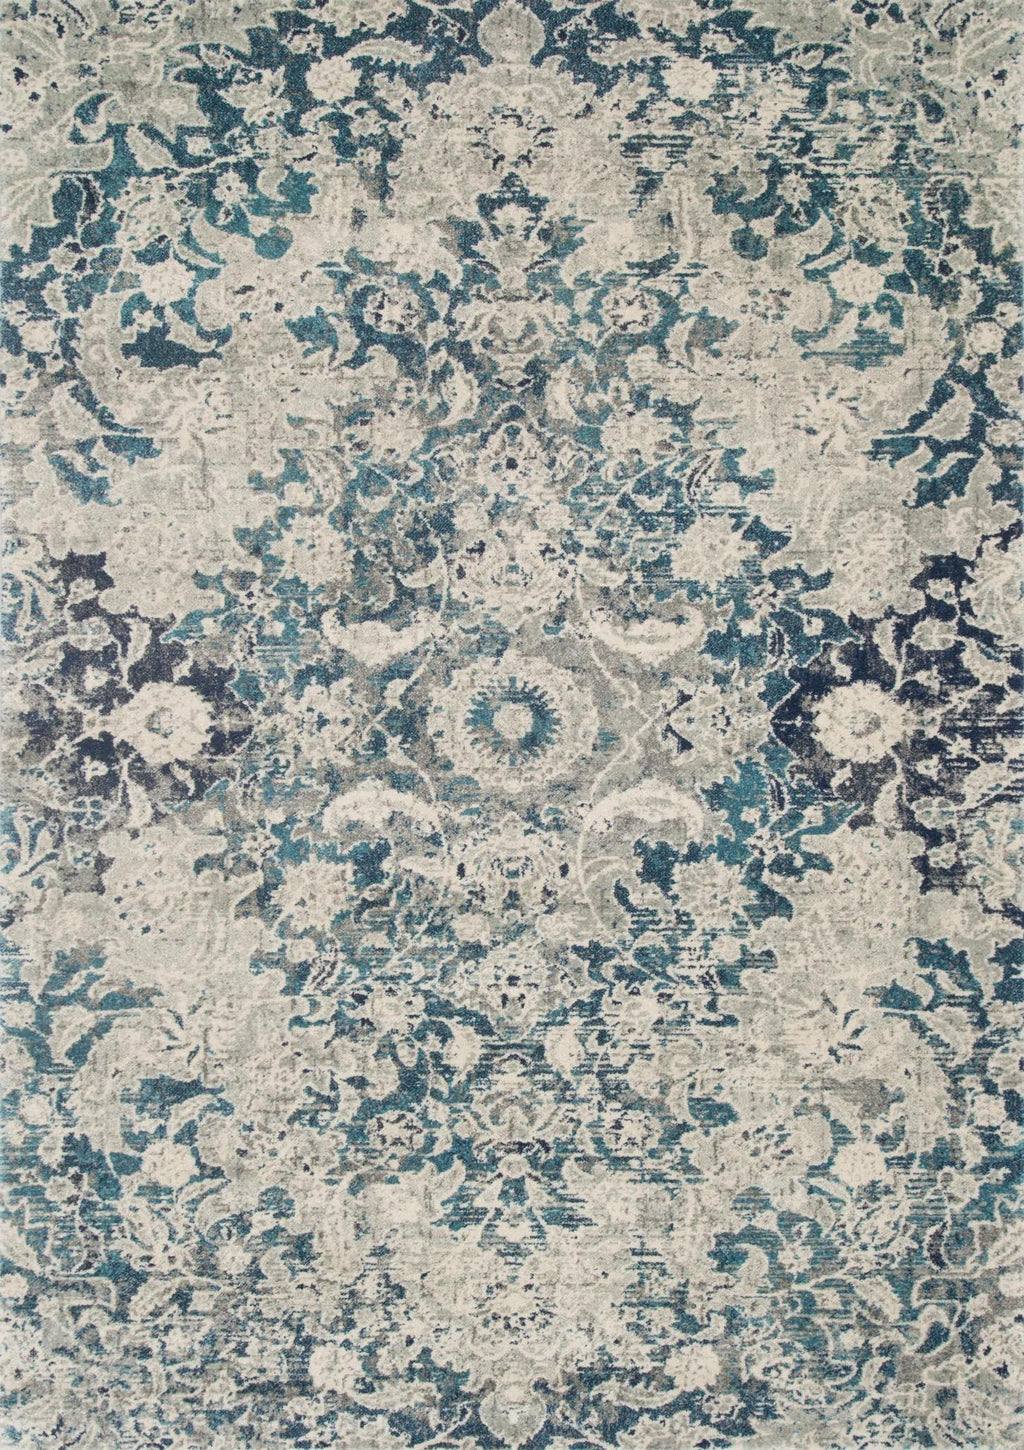 ZEHLA Collection Rug  in  OCEAN / SILVER Blue Runner Power-Loomed Polypropylene